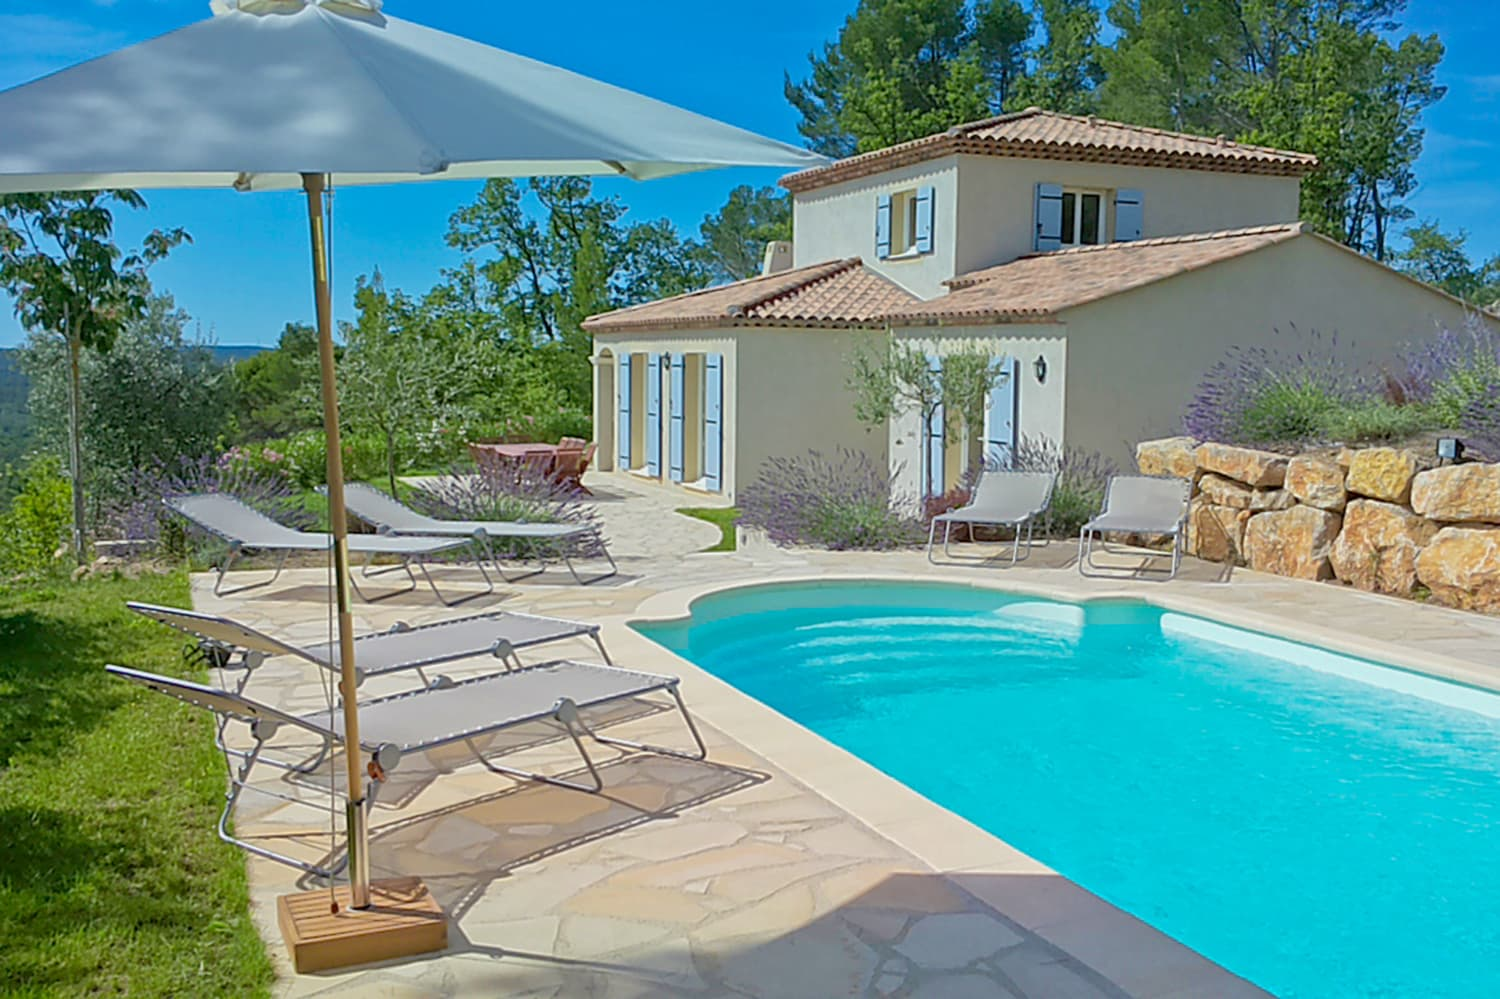 Holiday villa in Provence with private, heated pool and terrace